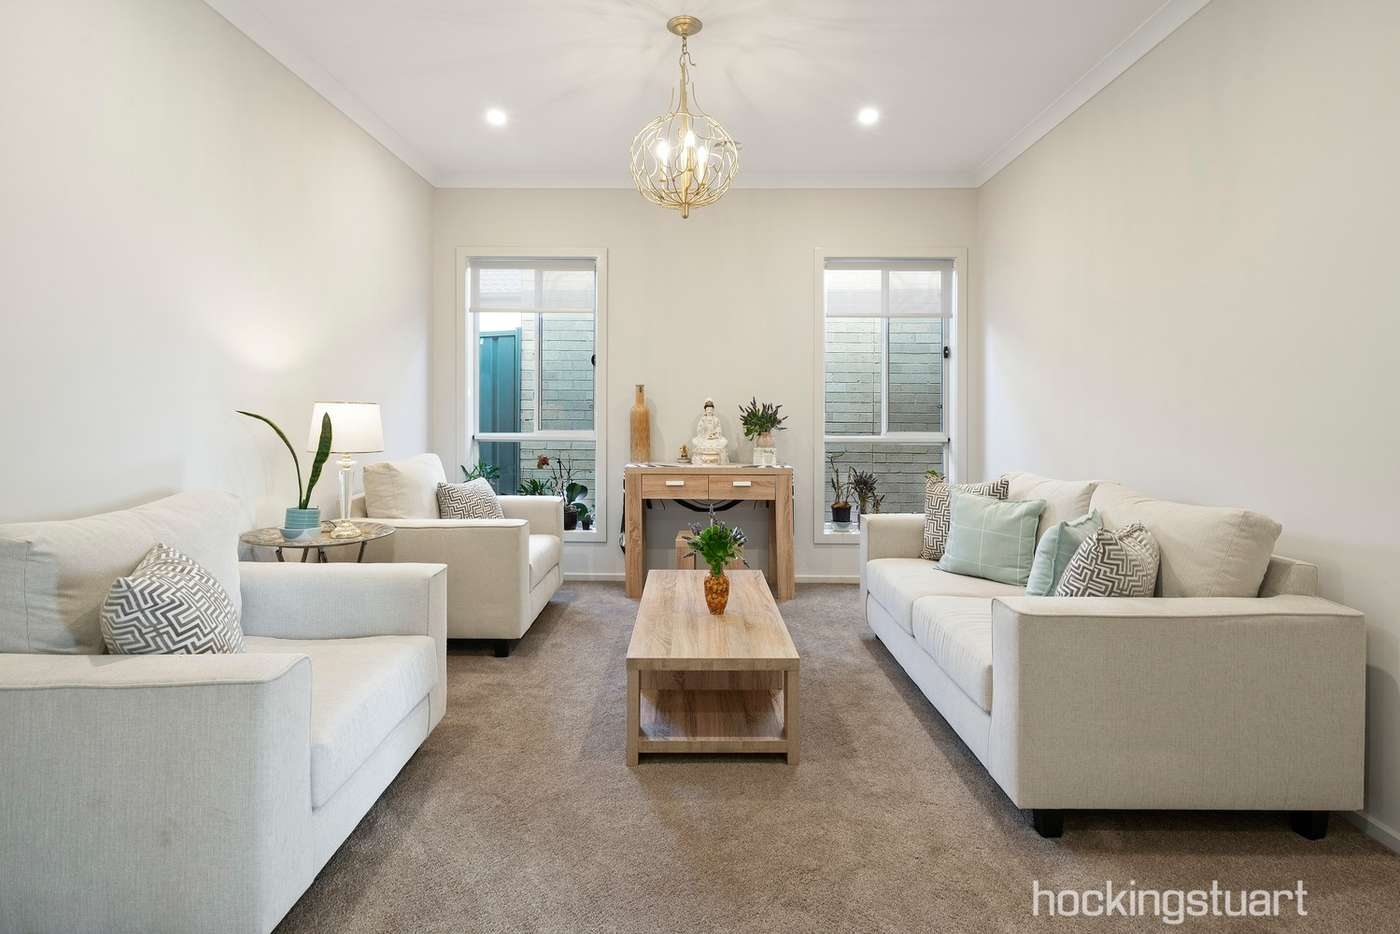 Fifth view of Homely house listing, 30 Fortescue Boulevard, Manor Lakes VIC 3024